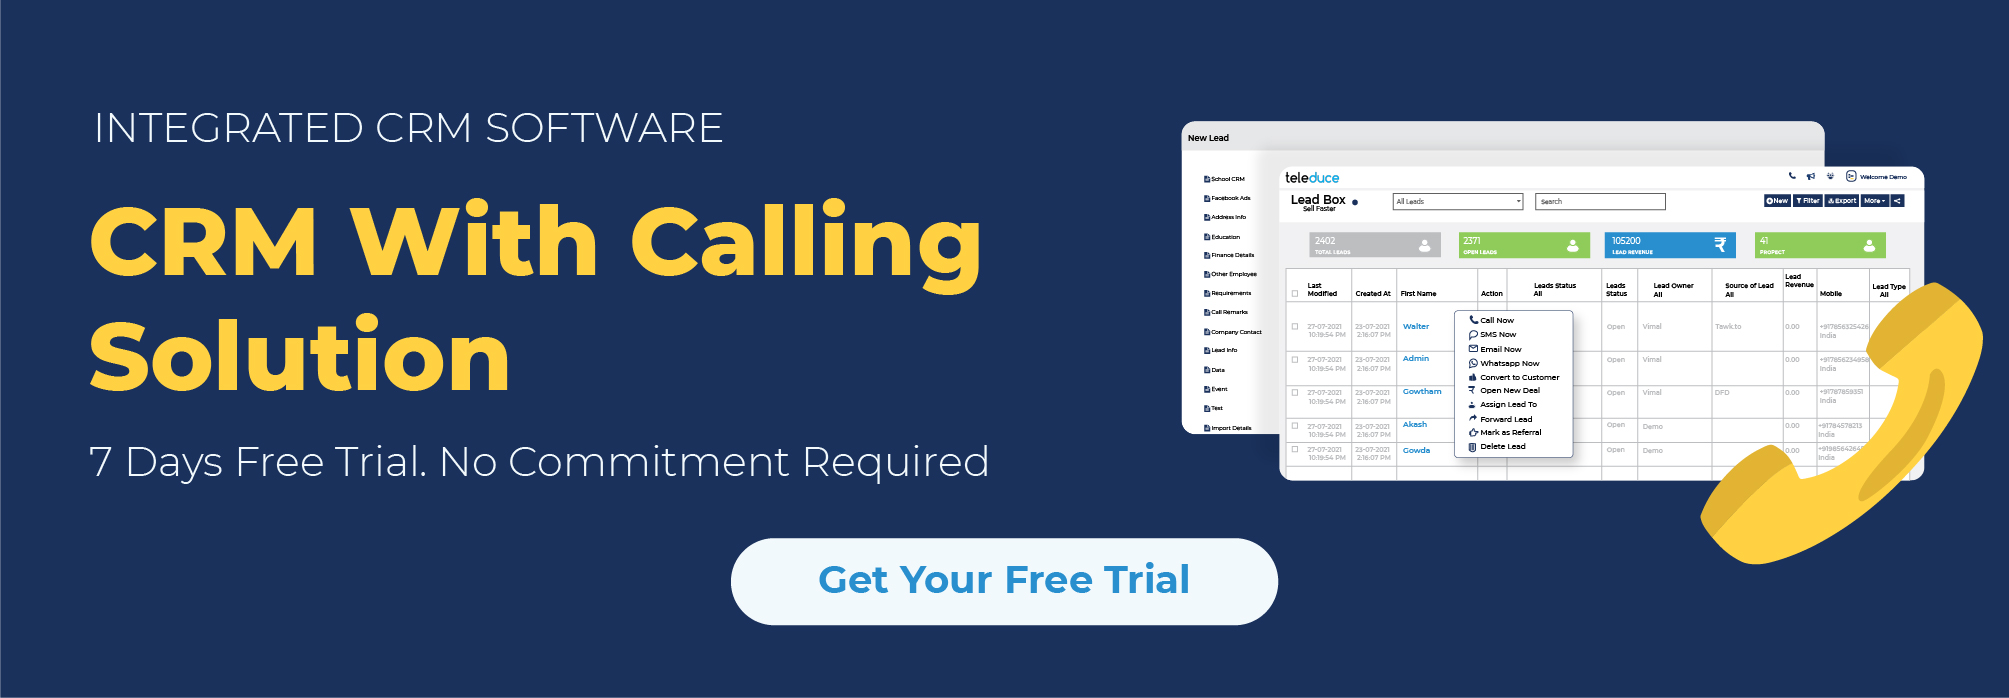 CRM with Calling Solution